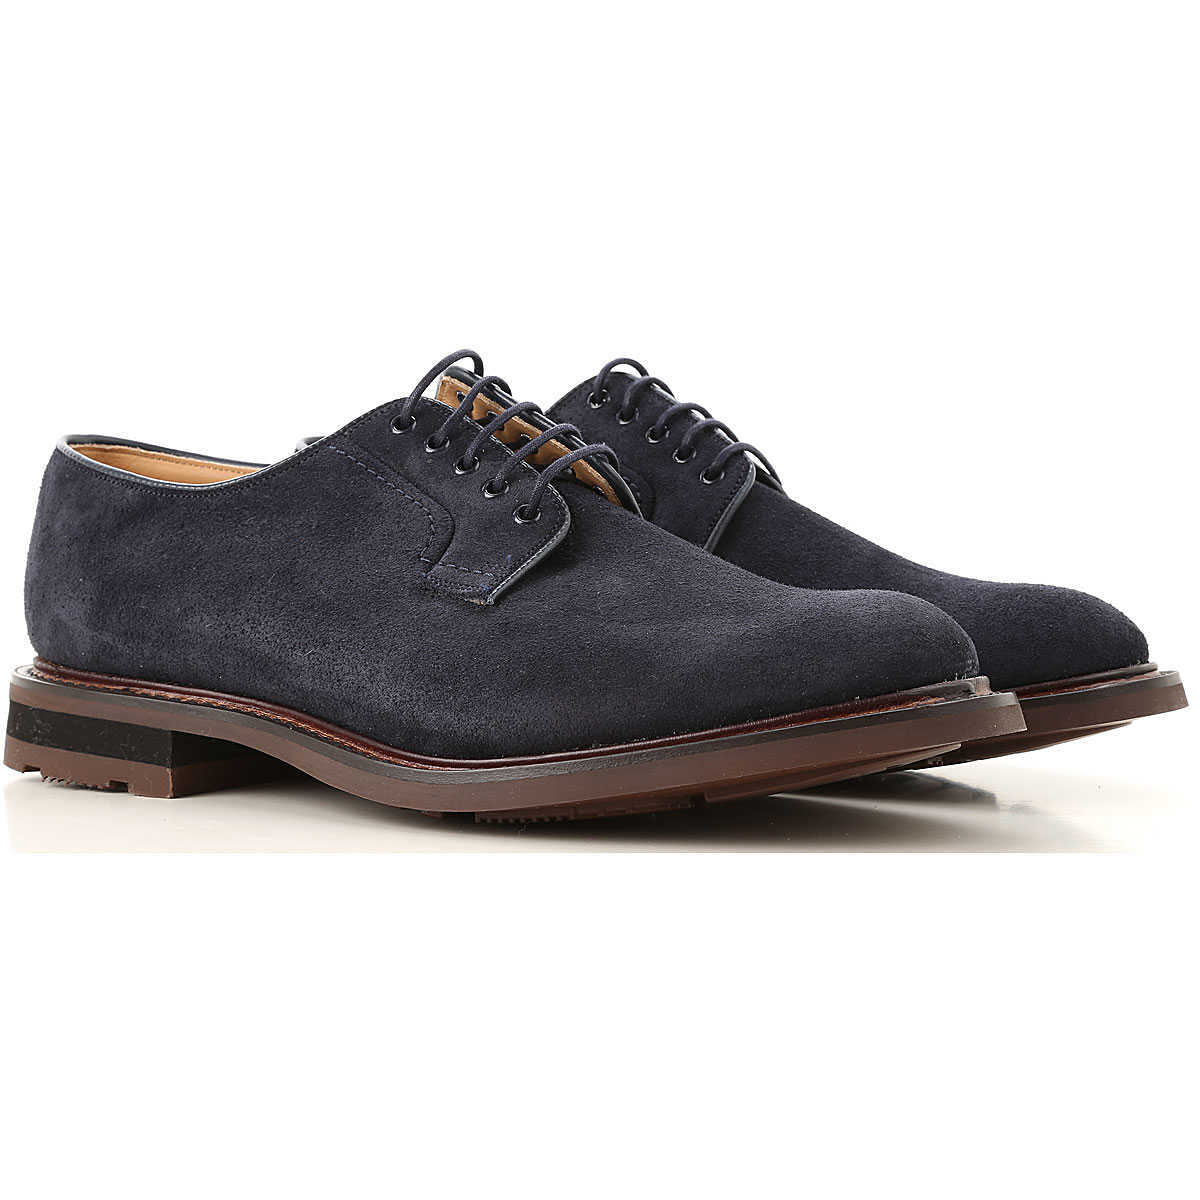 Church's Lace Up Shoes for Men Oxfords 10 7 7.5 9.5 Derbies and Brogues UK - GOOFASH